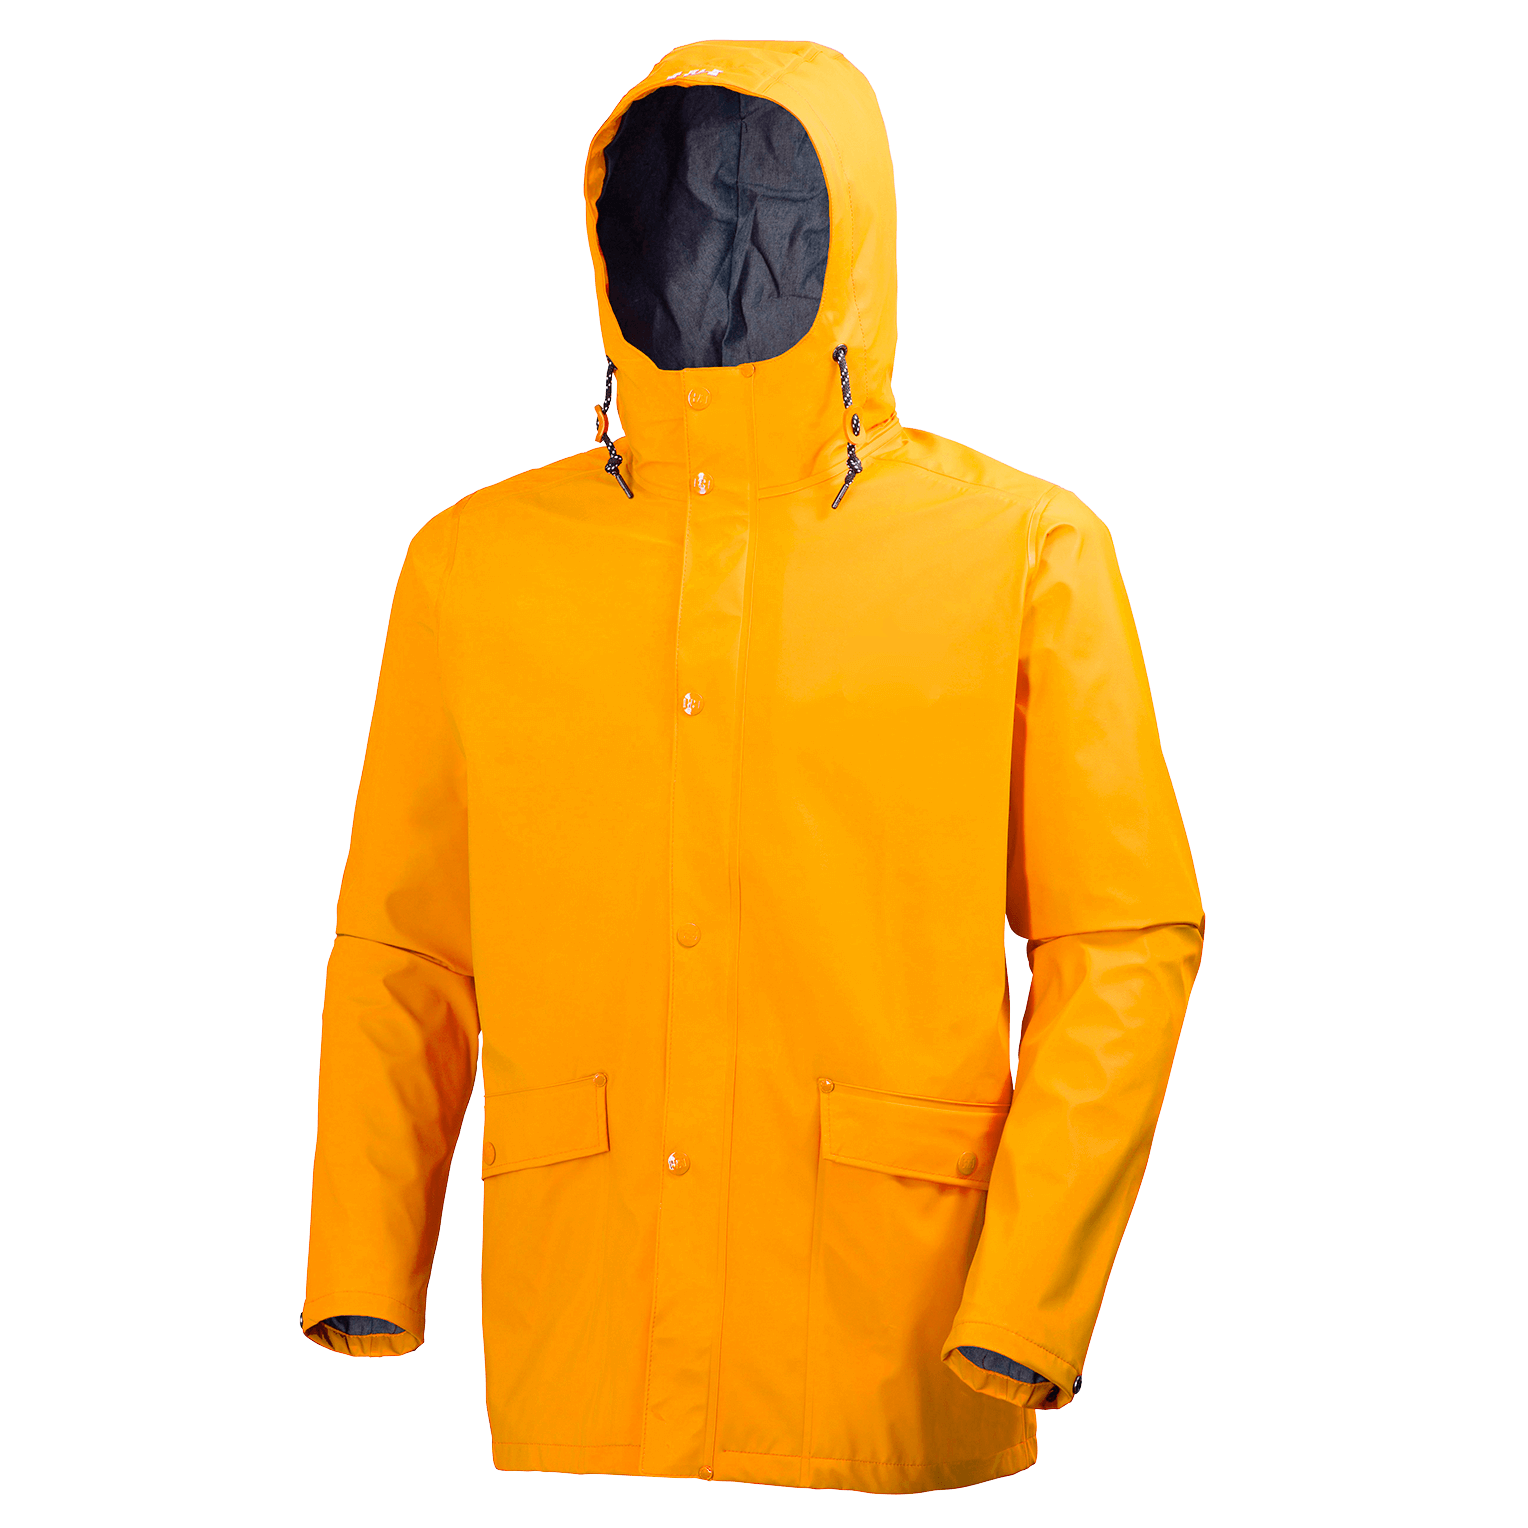 Raincoat drawing tailored jacket. Helly hansen mens captains